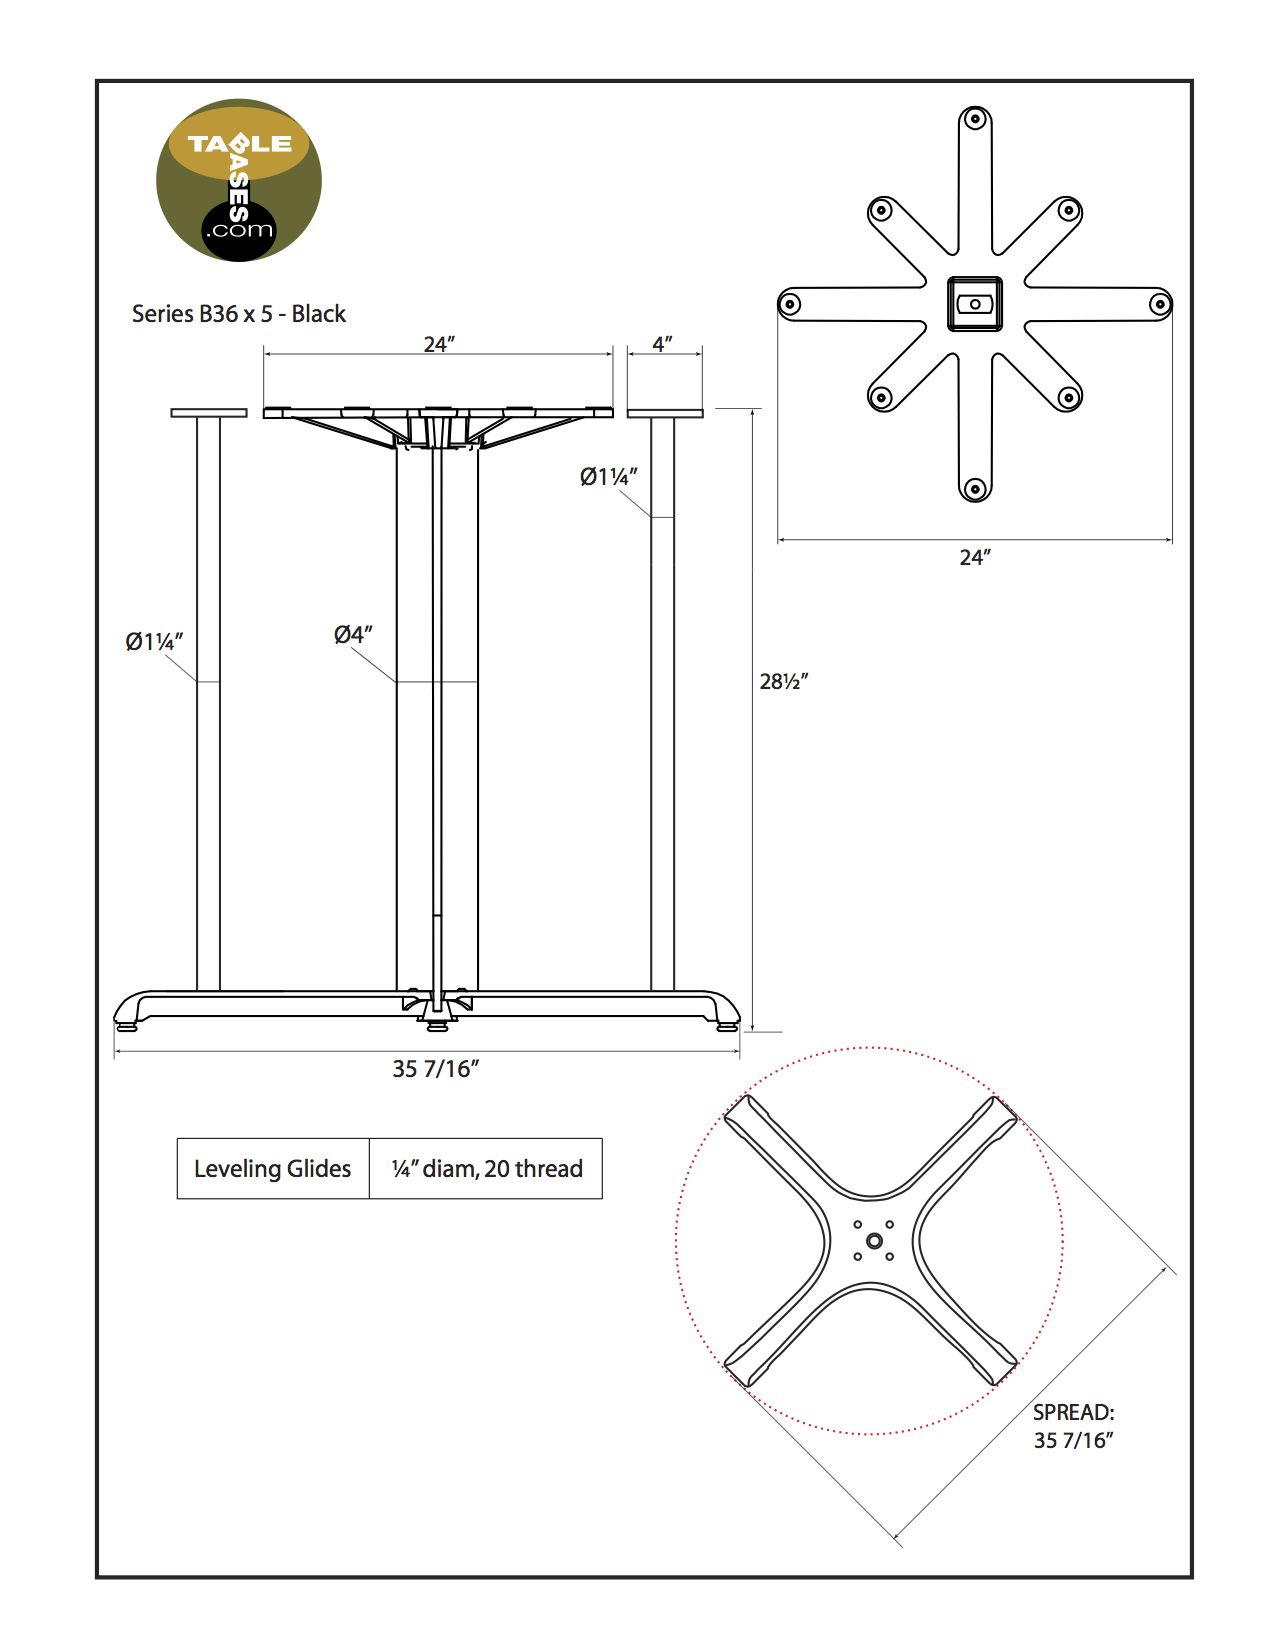 B36X5 Black Table Base - Specifications